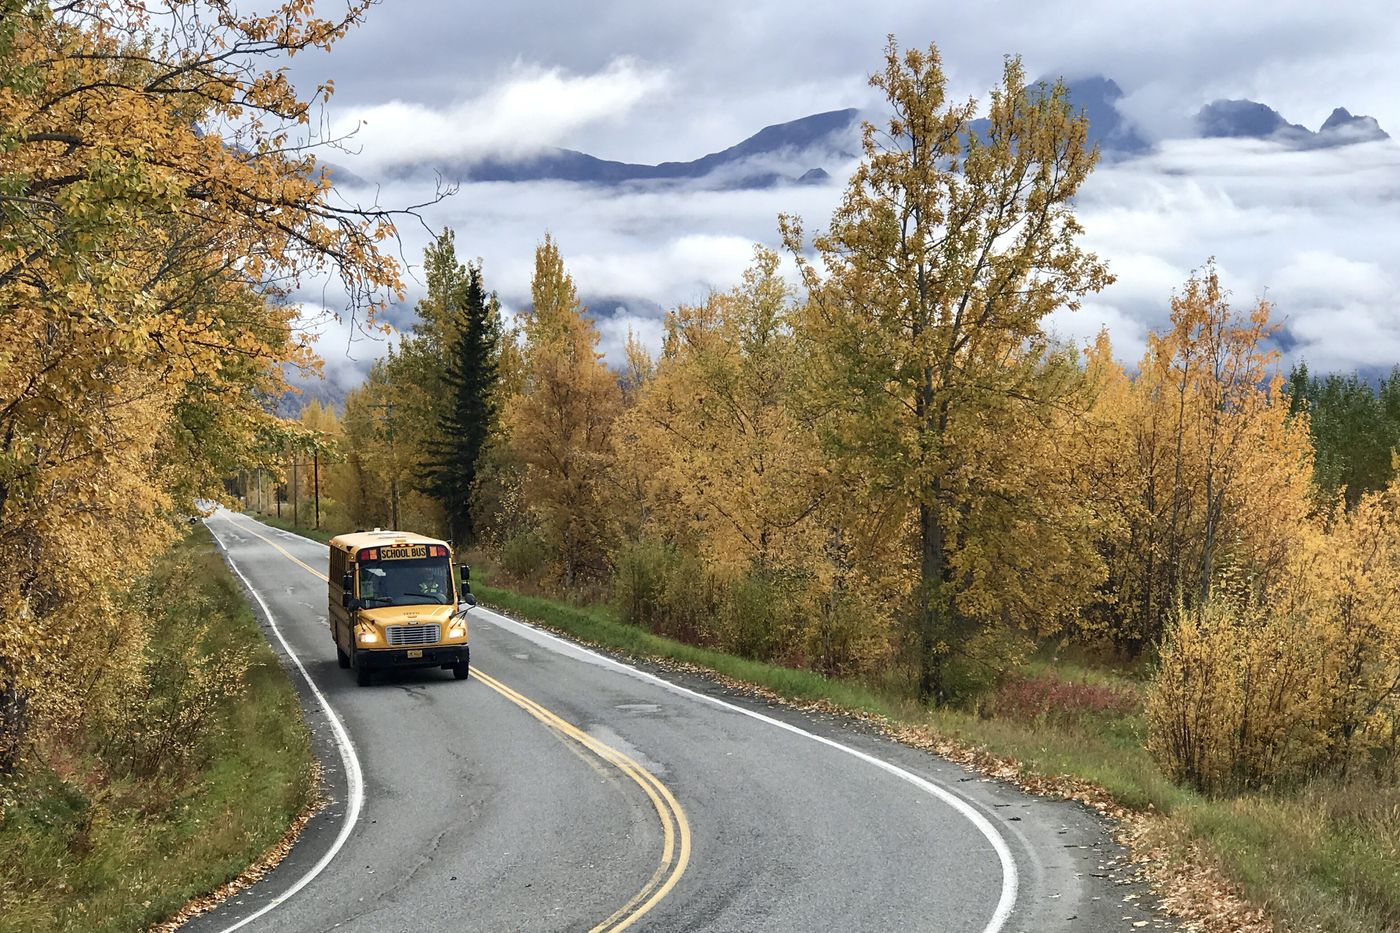 A school bus travels on South Bodenburg Loop near the Butte while dropping off students after school on Thursday, Sept. 24, 2020. (Bill Roth/ADN)